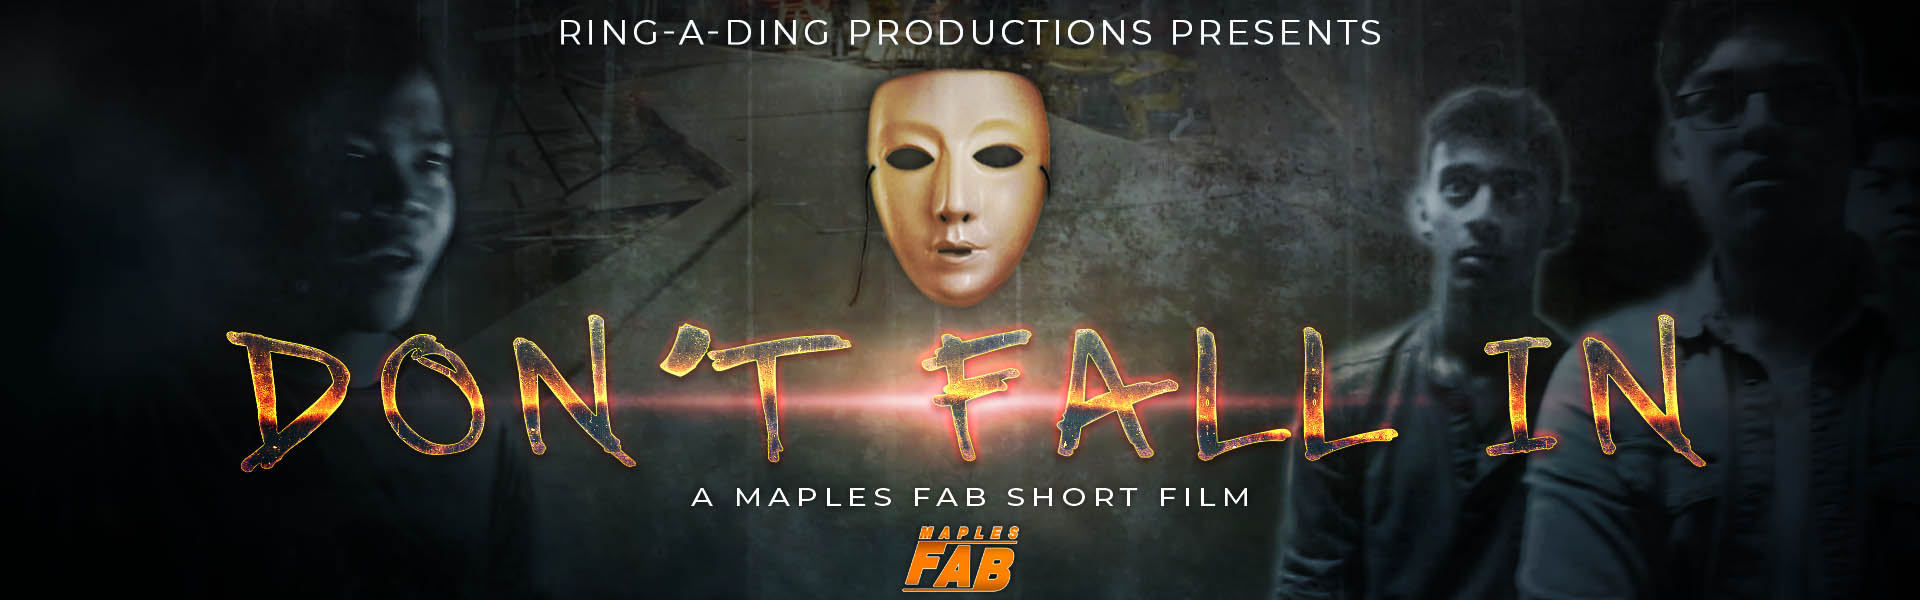 Don't Fall In - A Maples FAB Short Film